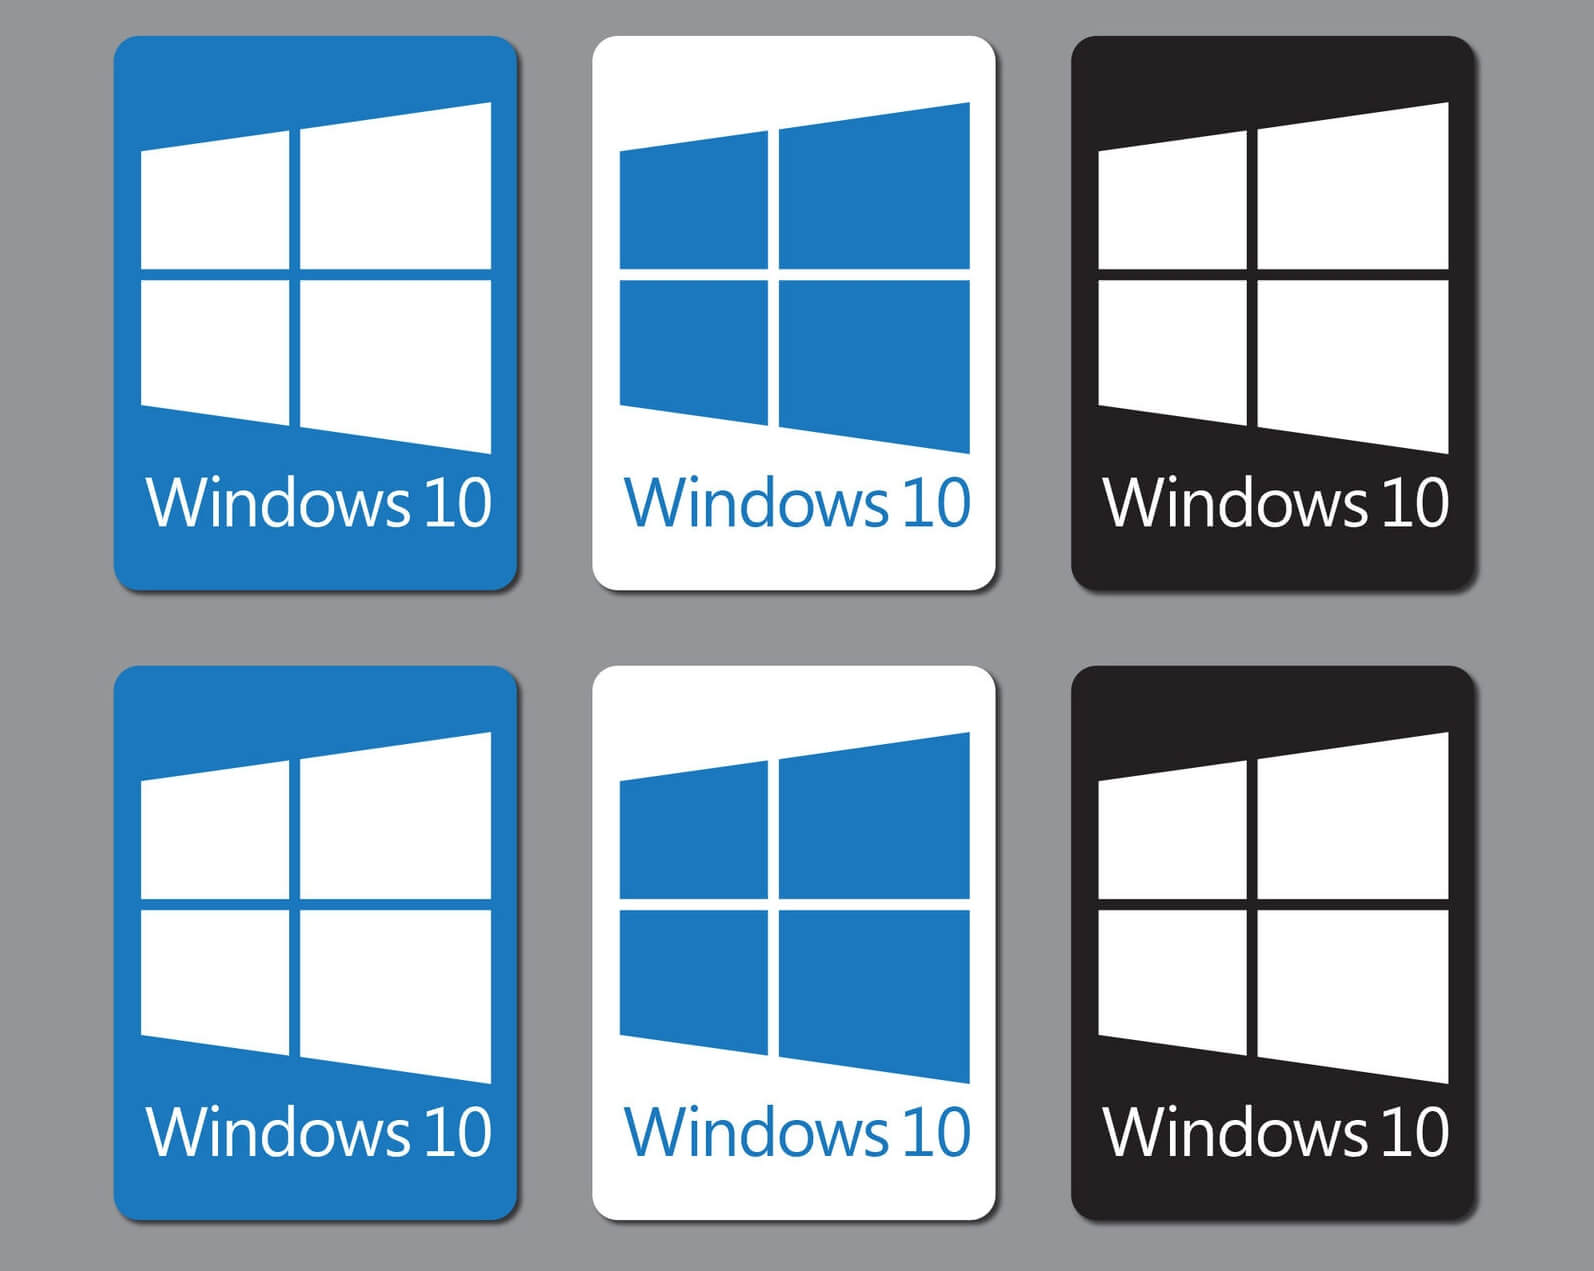 Microsoft is phasing out 32-bit versions of Windows 10